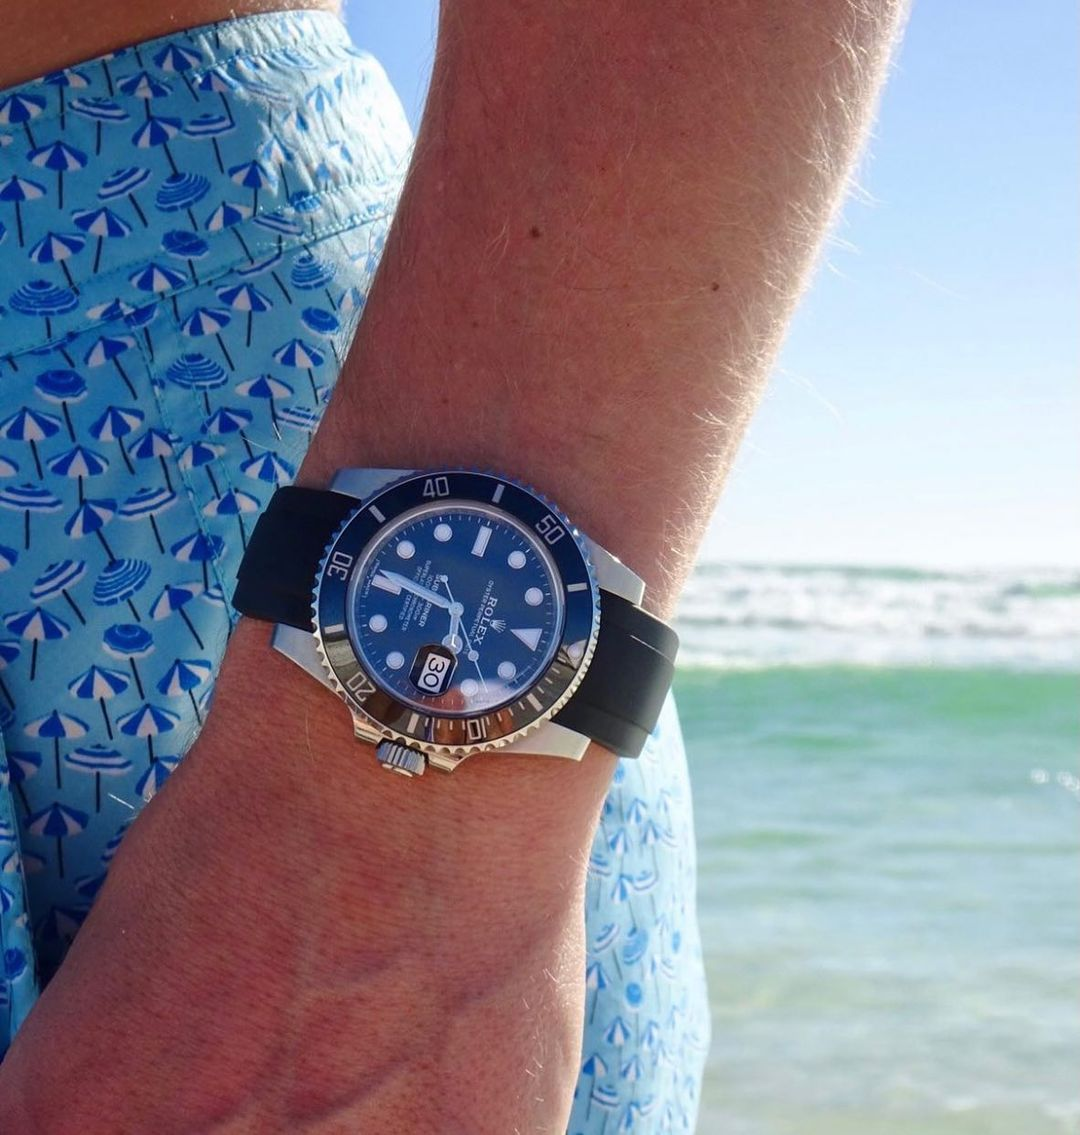 rolex submariner with everest rubber strap in black on beach